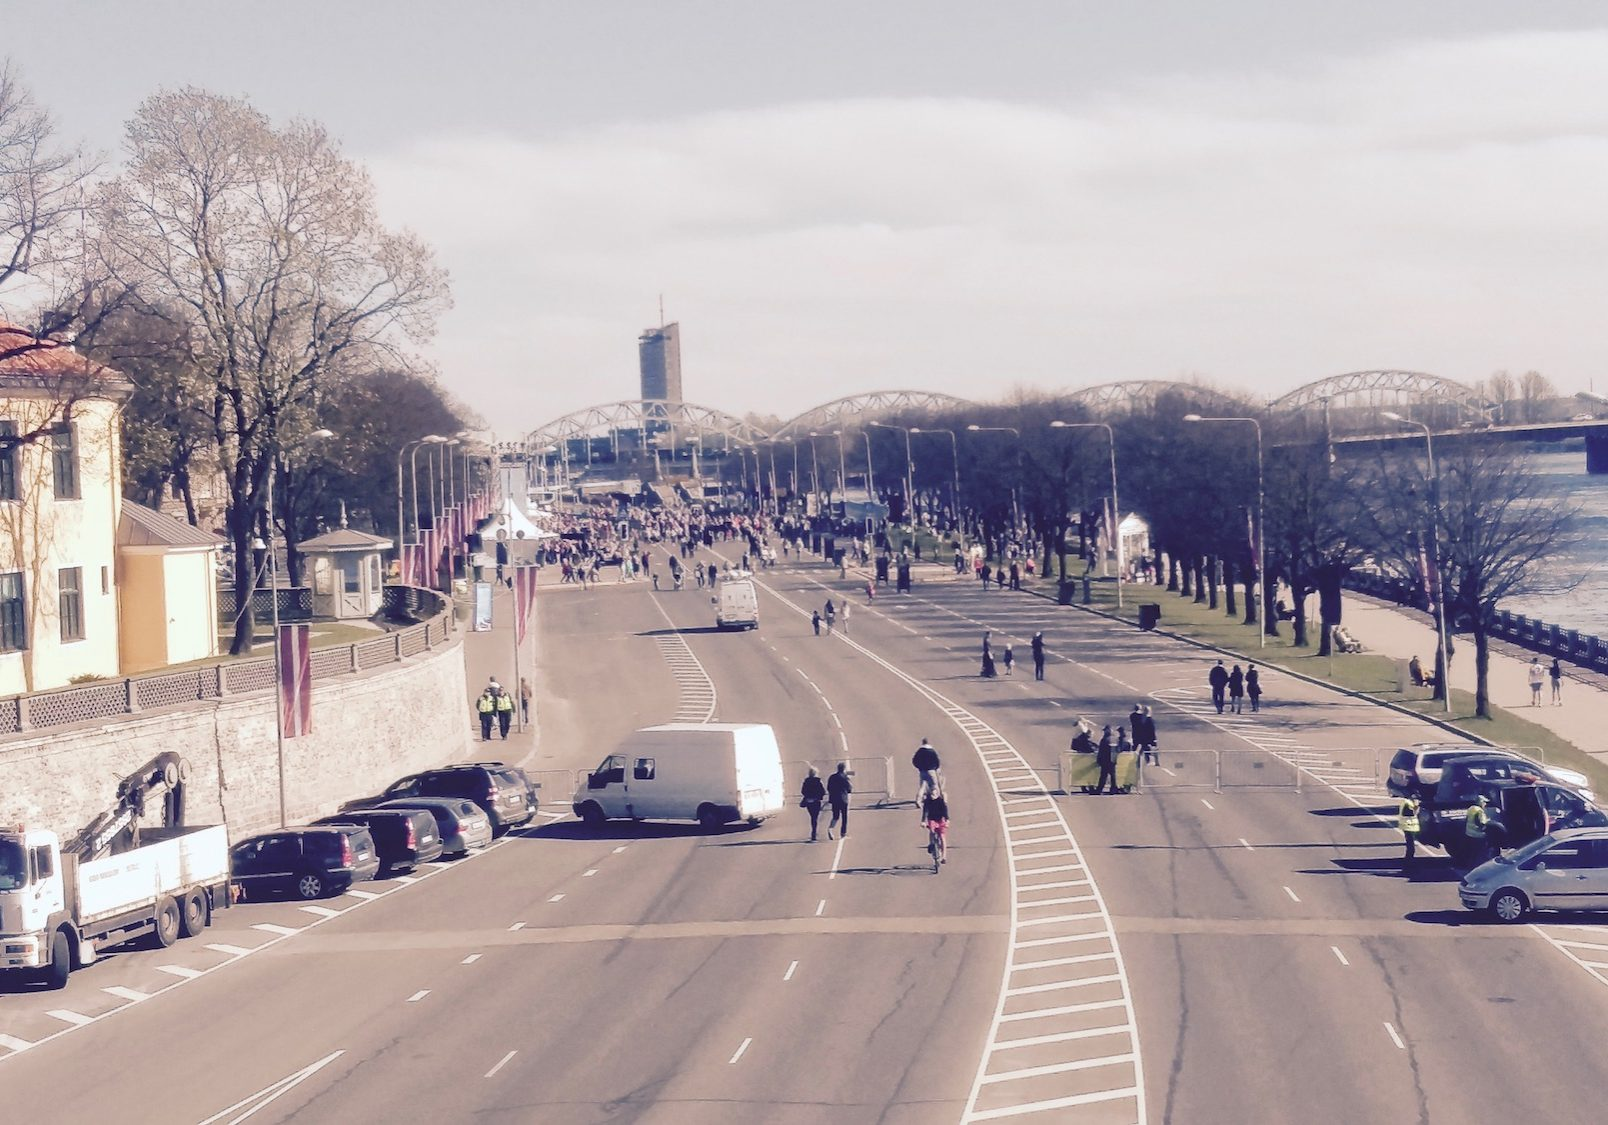 The Embankment of November 11, one of the most important streets